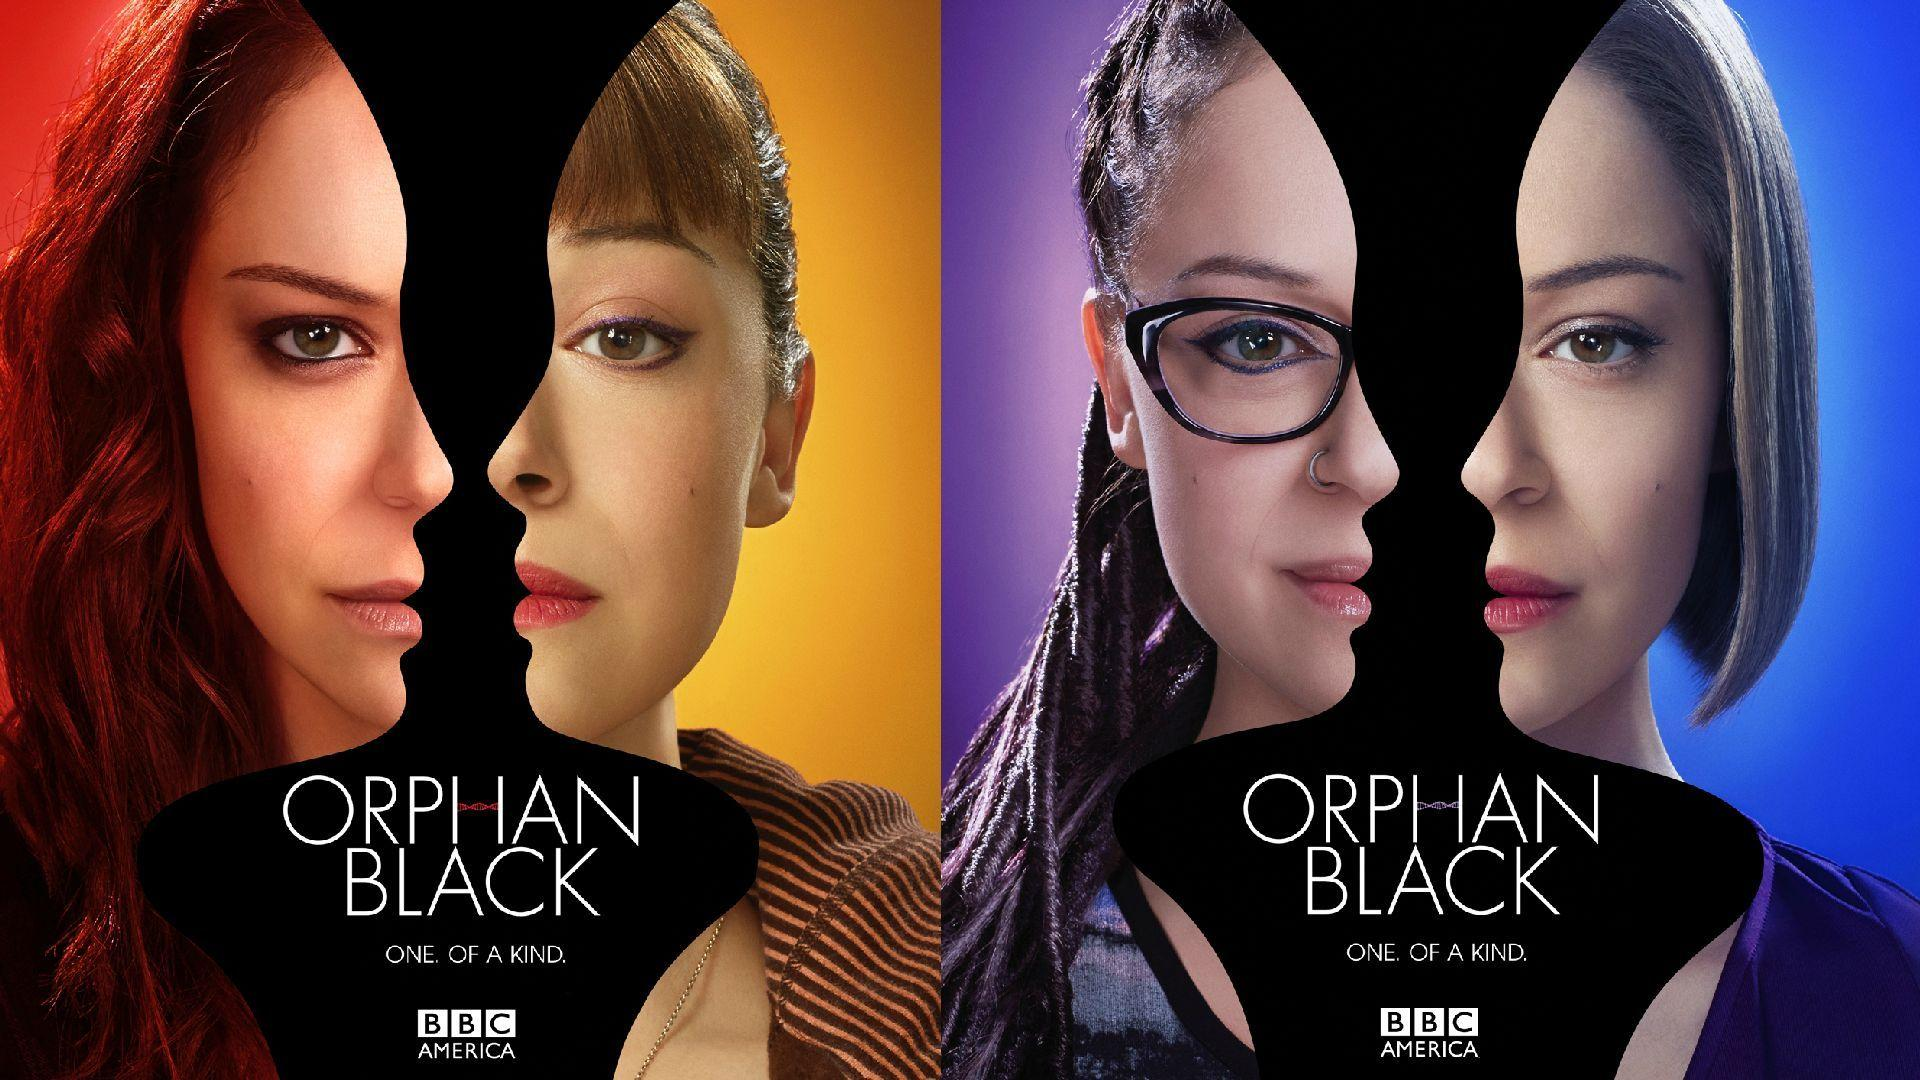 Orphan Black wallpapers. Anyone have some good ones? Here's the ...